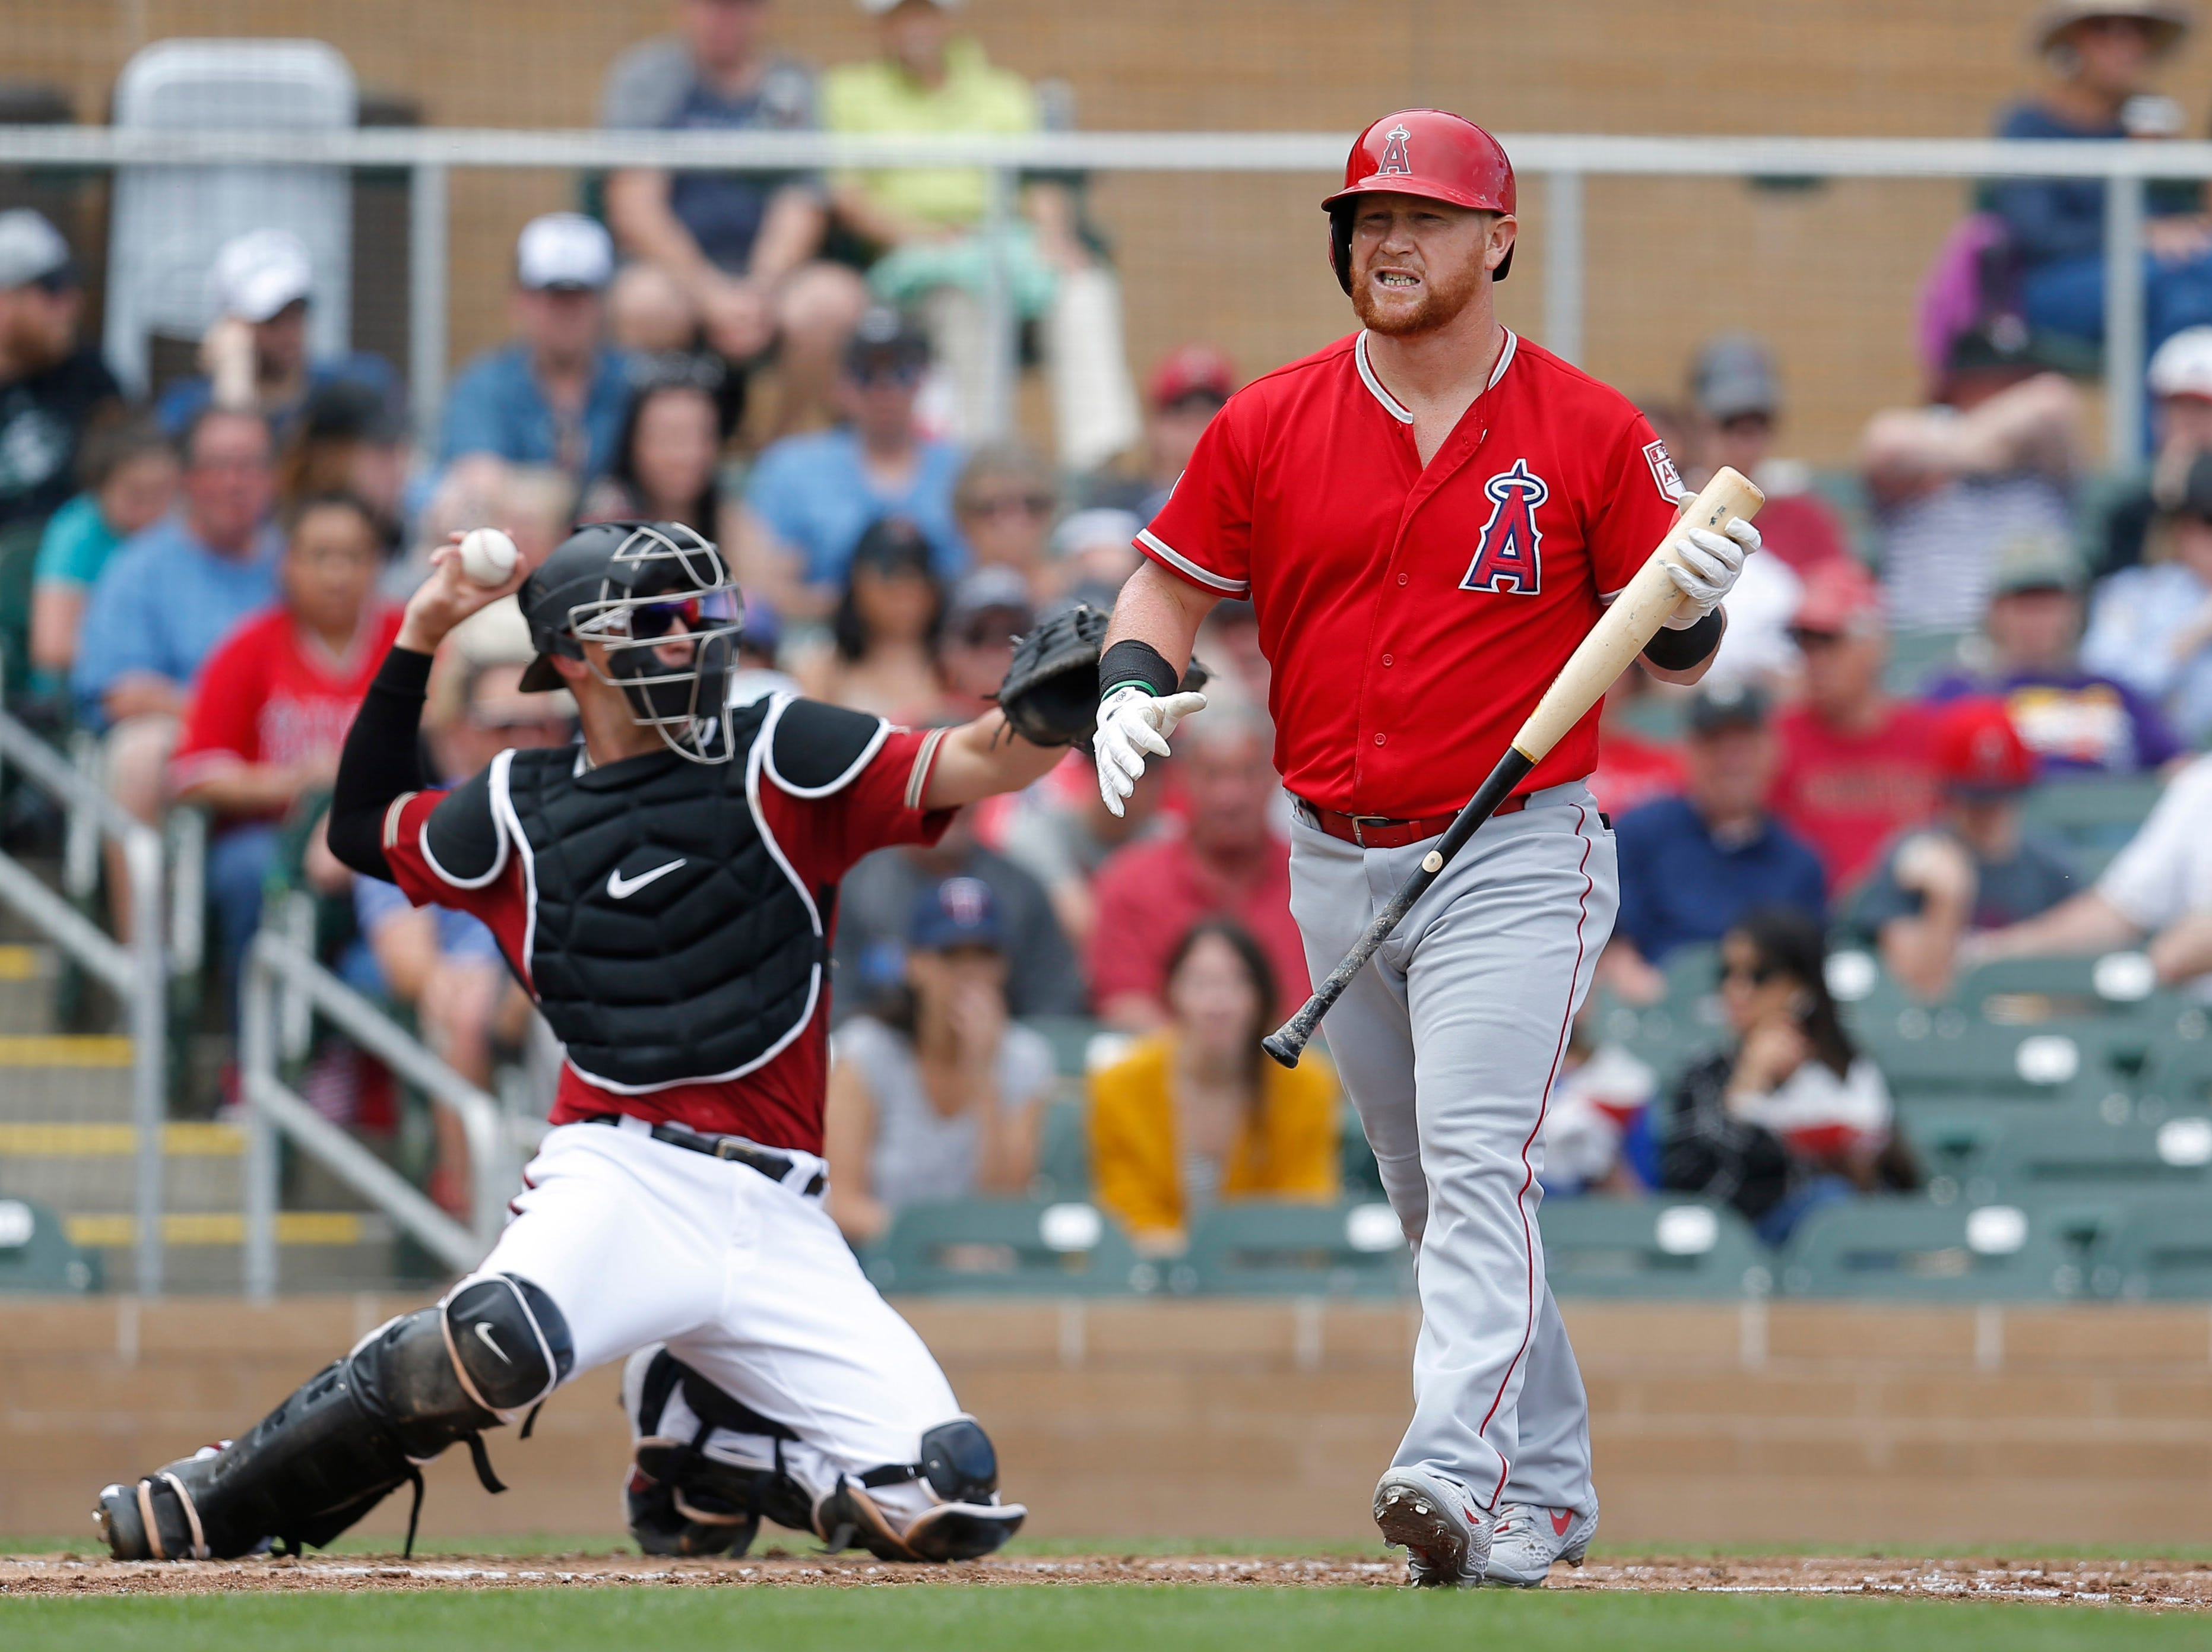 Angels right fielder Kole Calhoun (56) reacts after striking out against the Diamondbacks during the second inning of a spring training game at Salt River Fields.